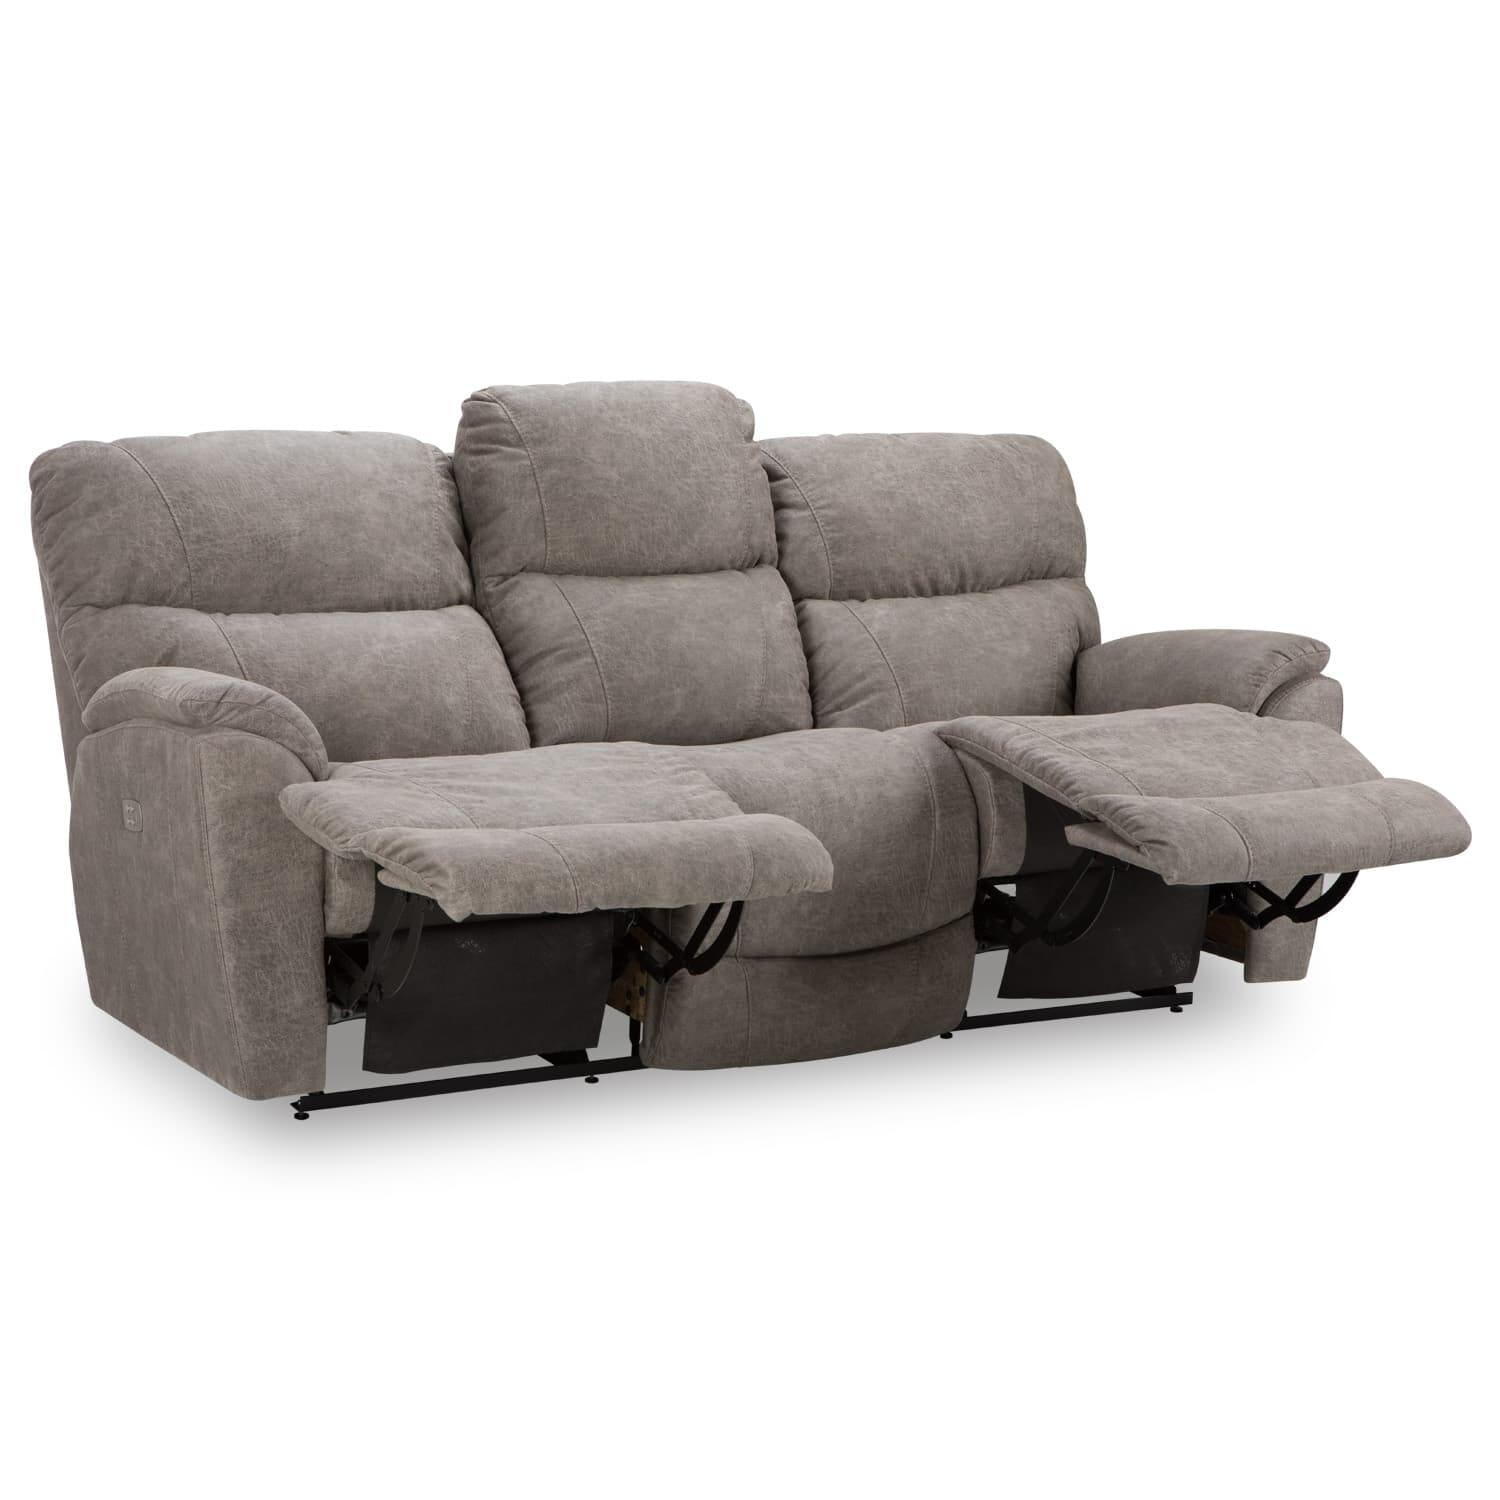 Living Room Sofas Furniture Sales From Wg Amp R In Wisconsin